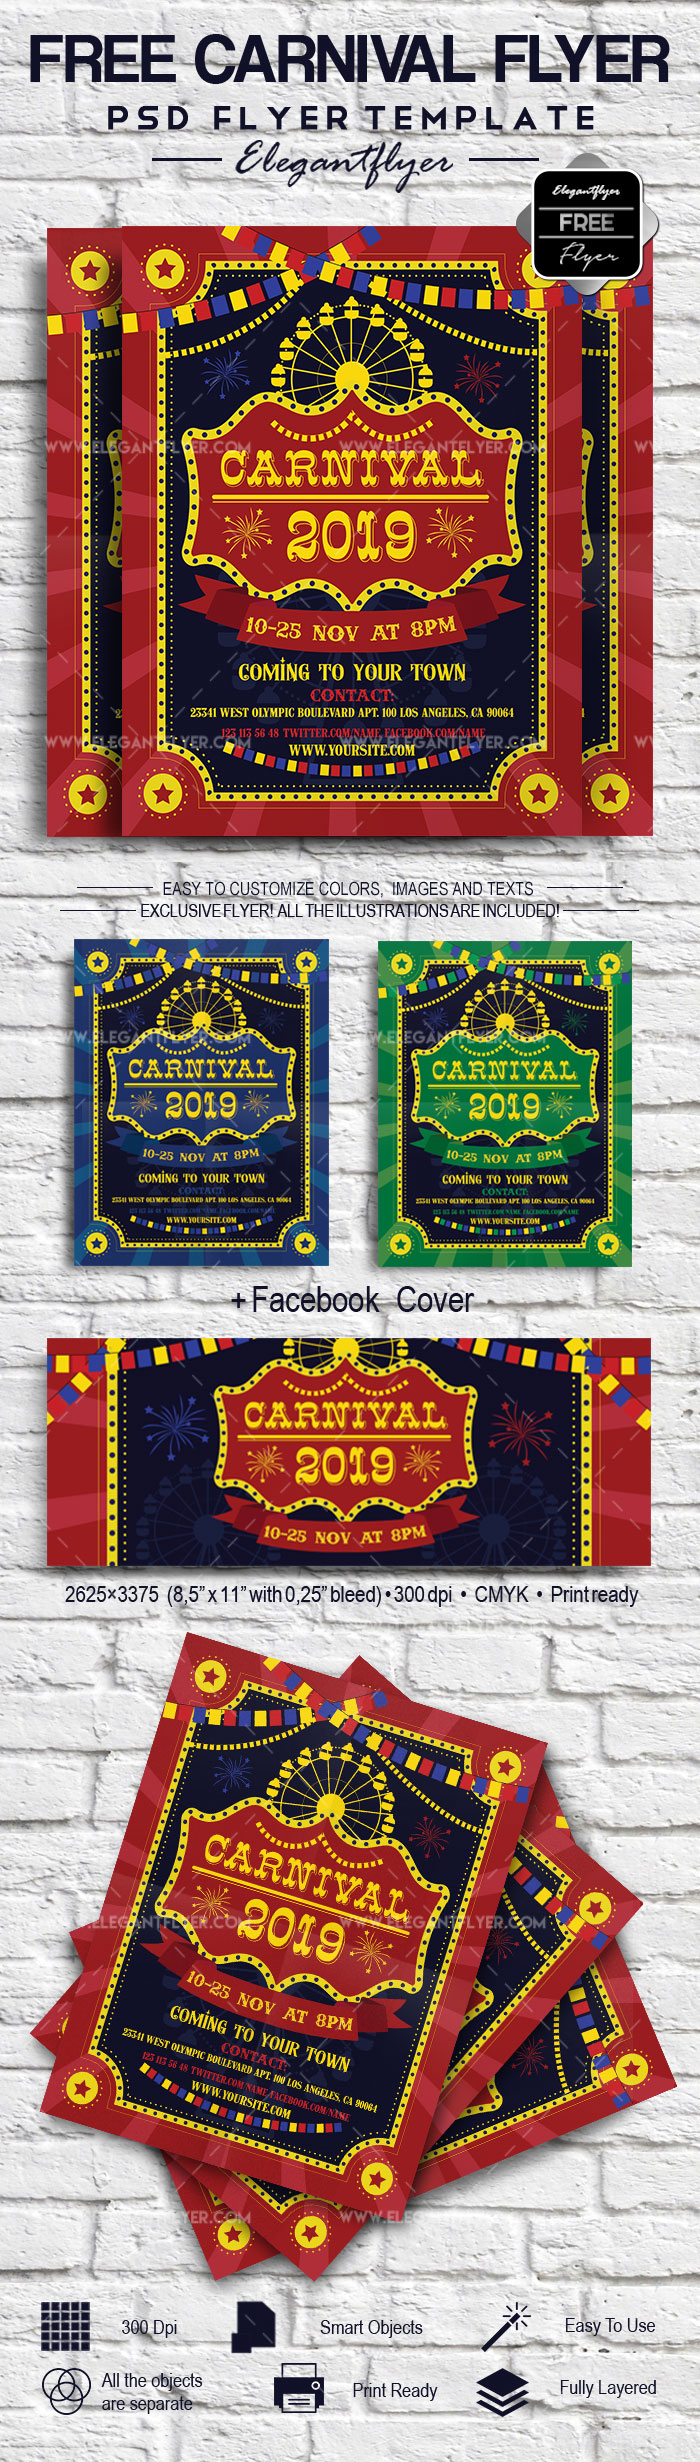 Carnival Free Flyer Template